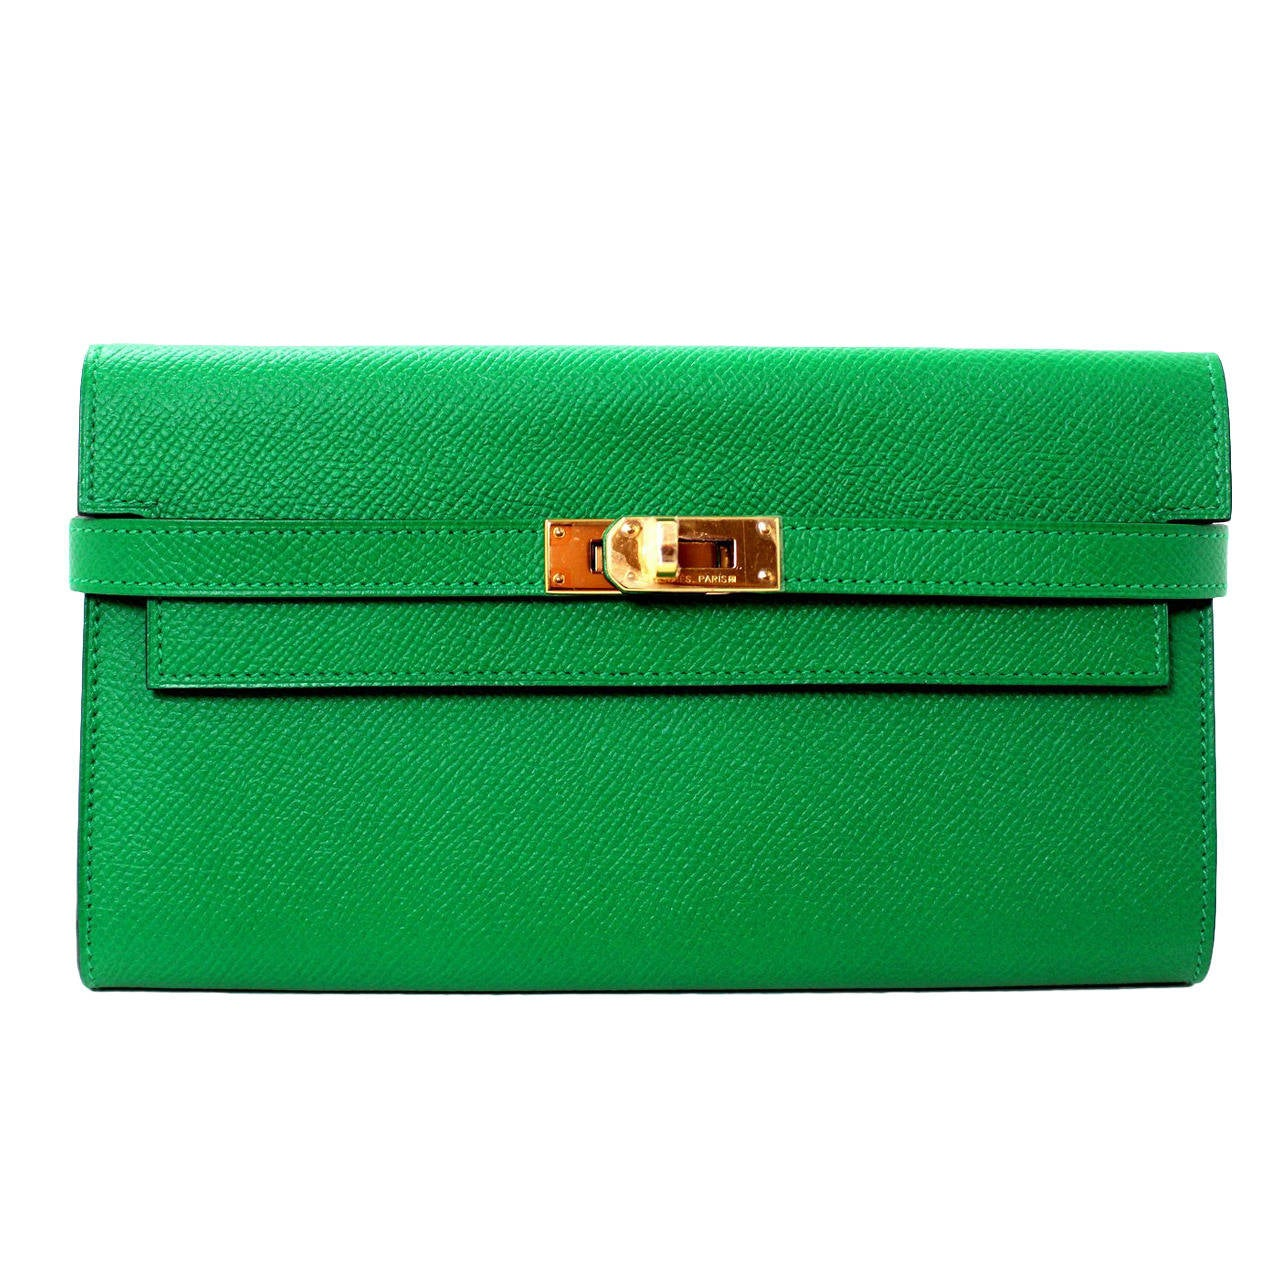 hermes green epsom bambou color kelly wallet ghw 1 - Bambou Color